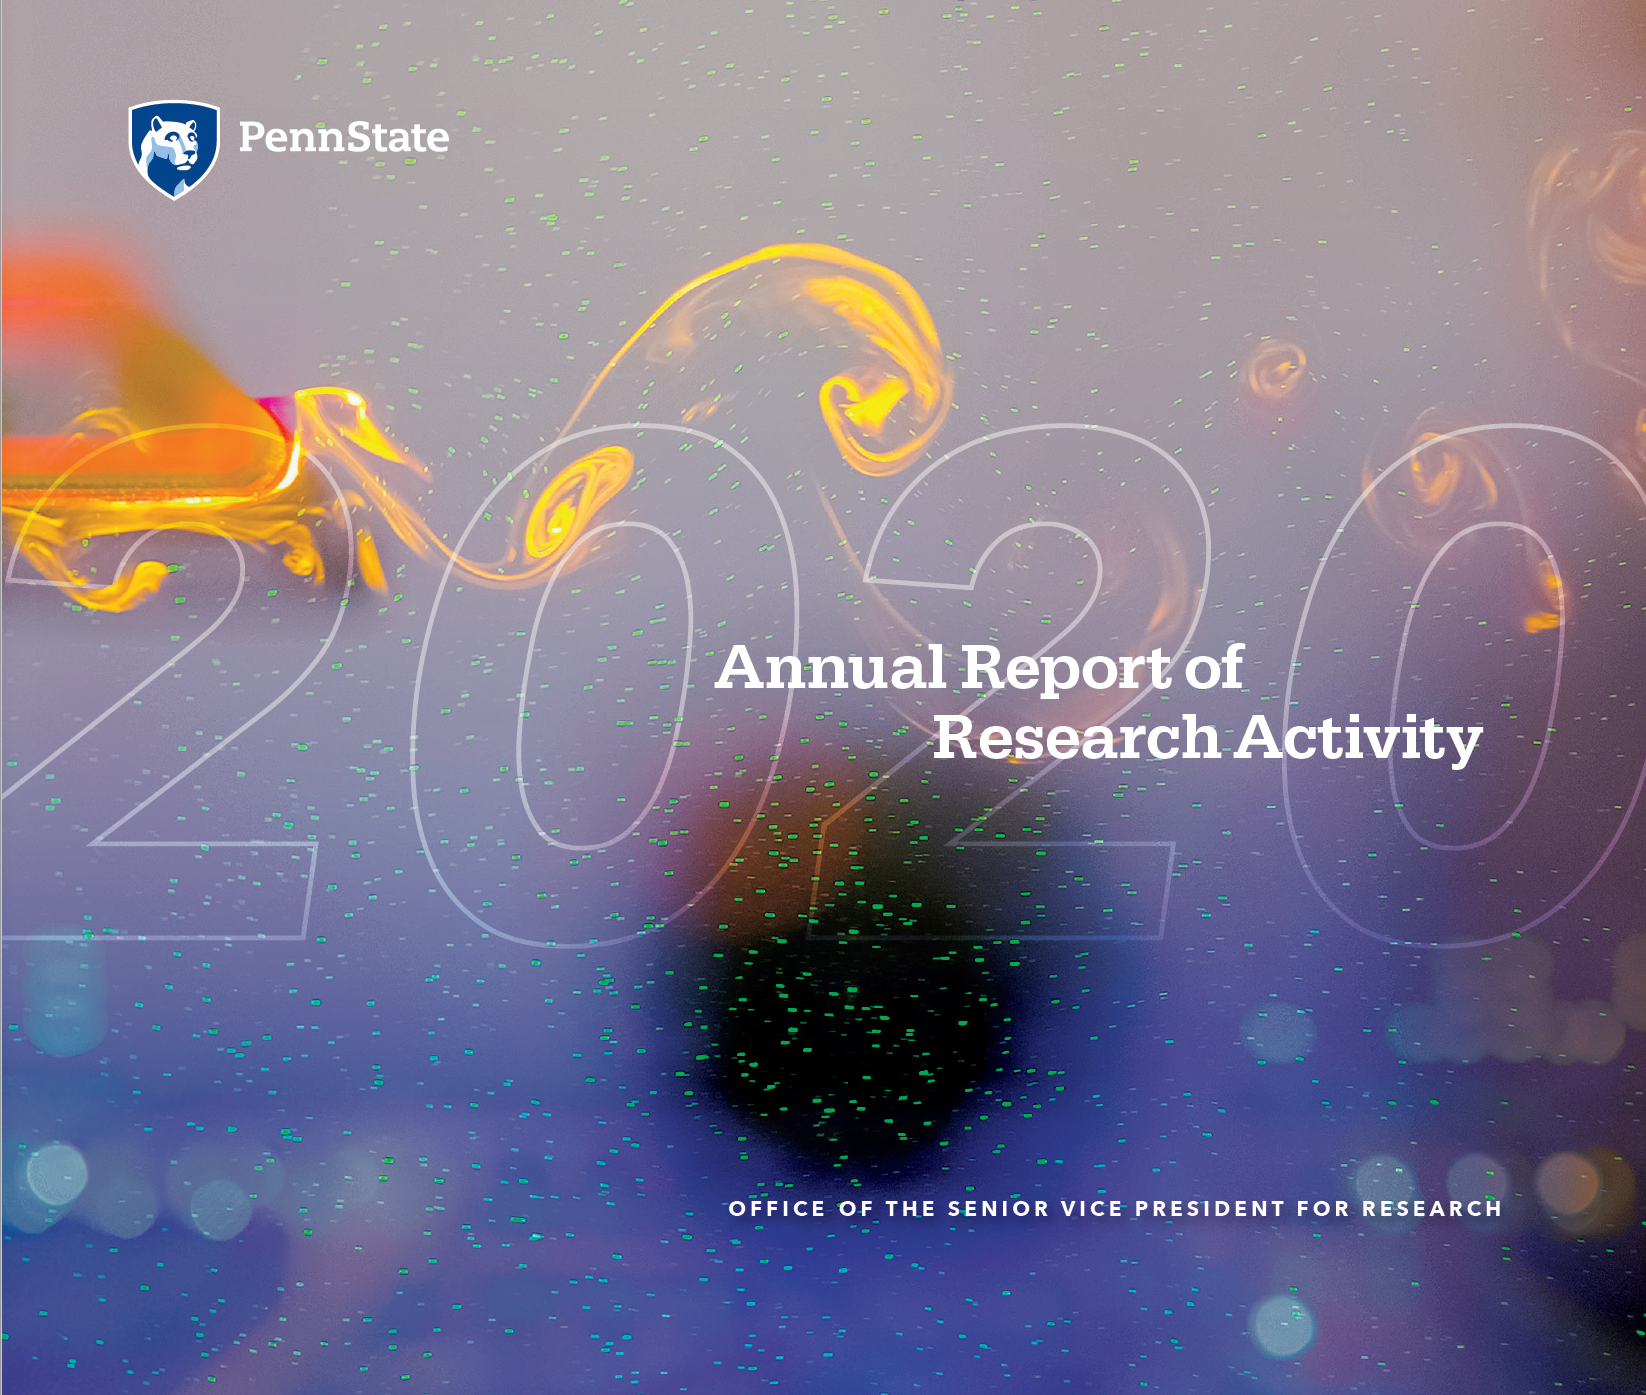 Cover page of 2020 Annual Report